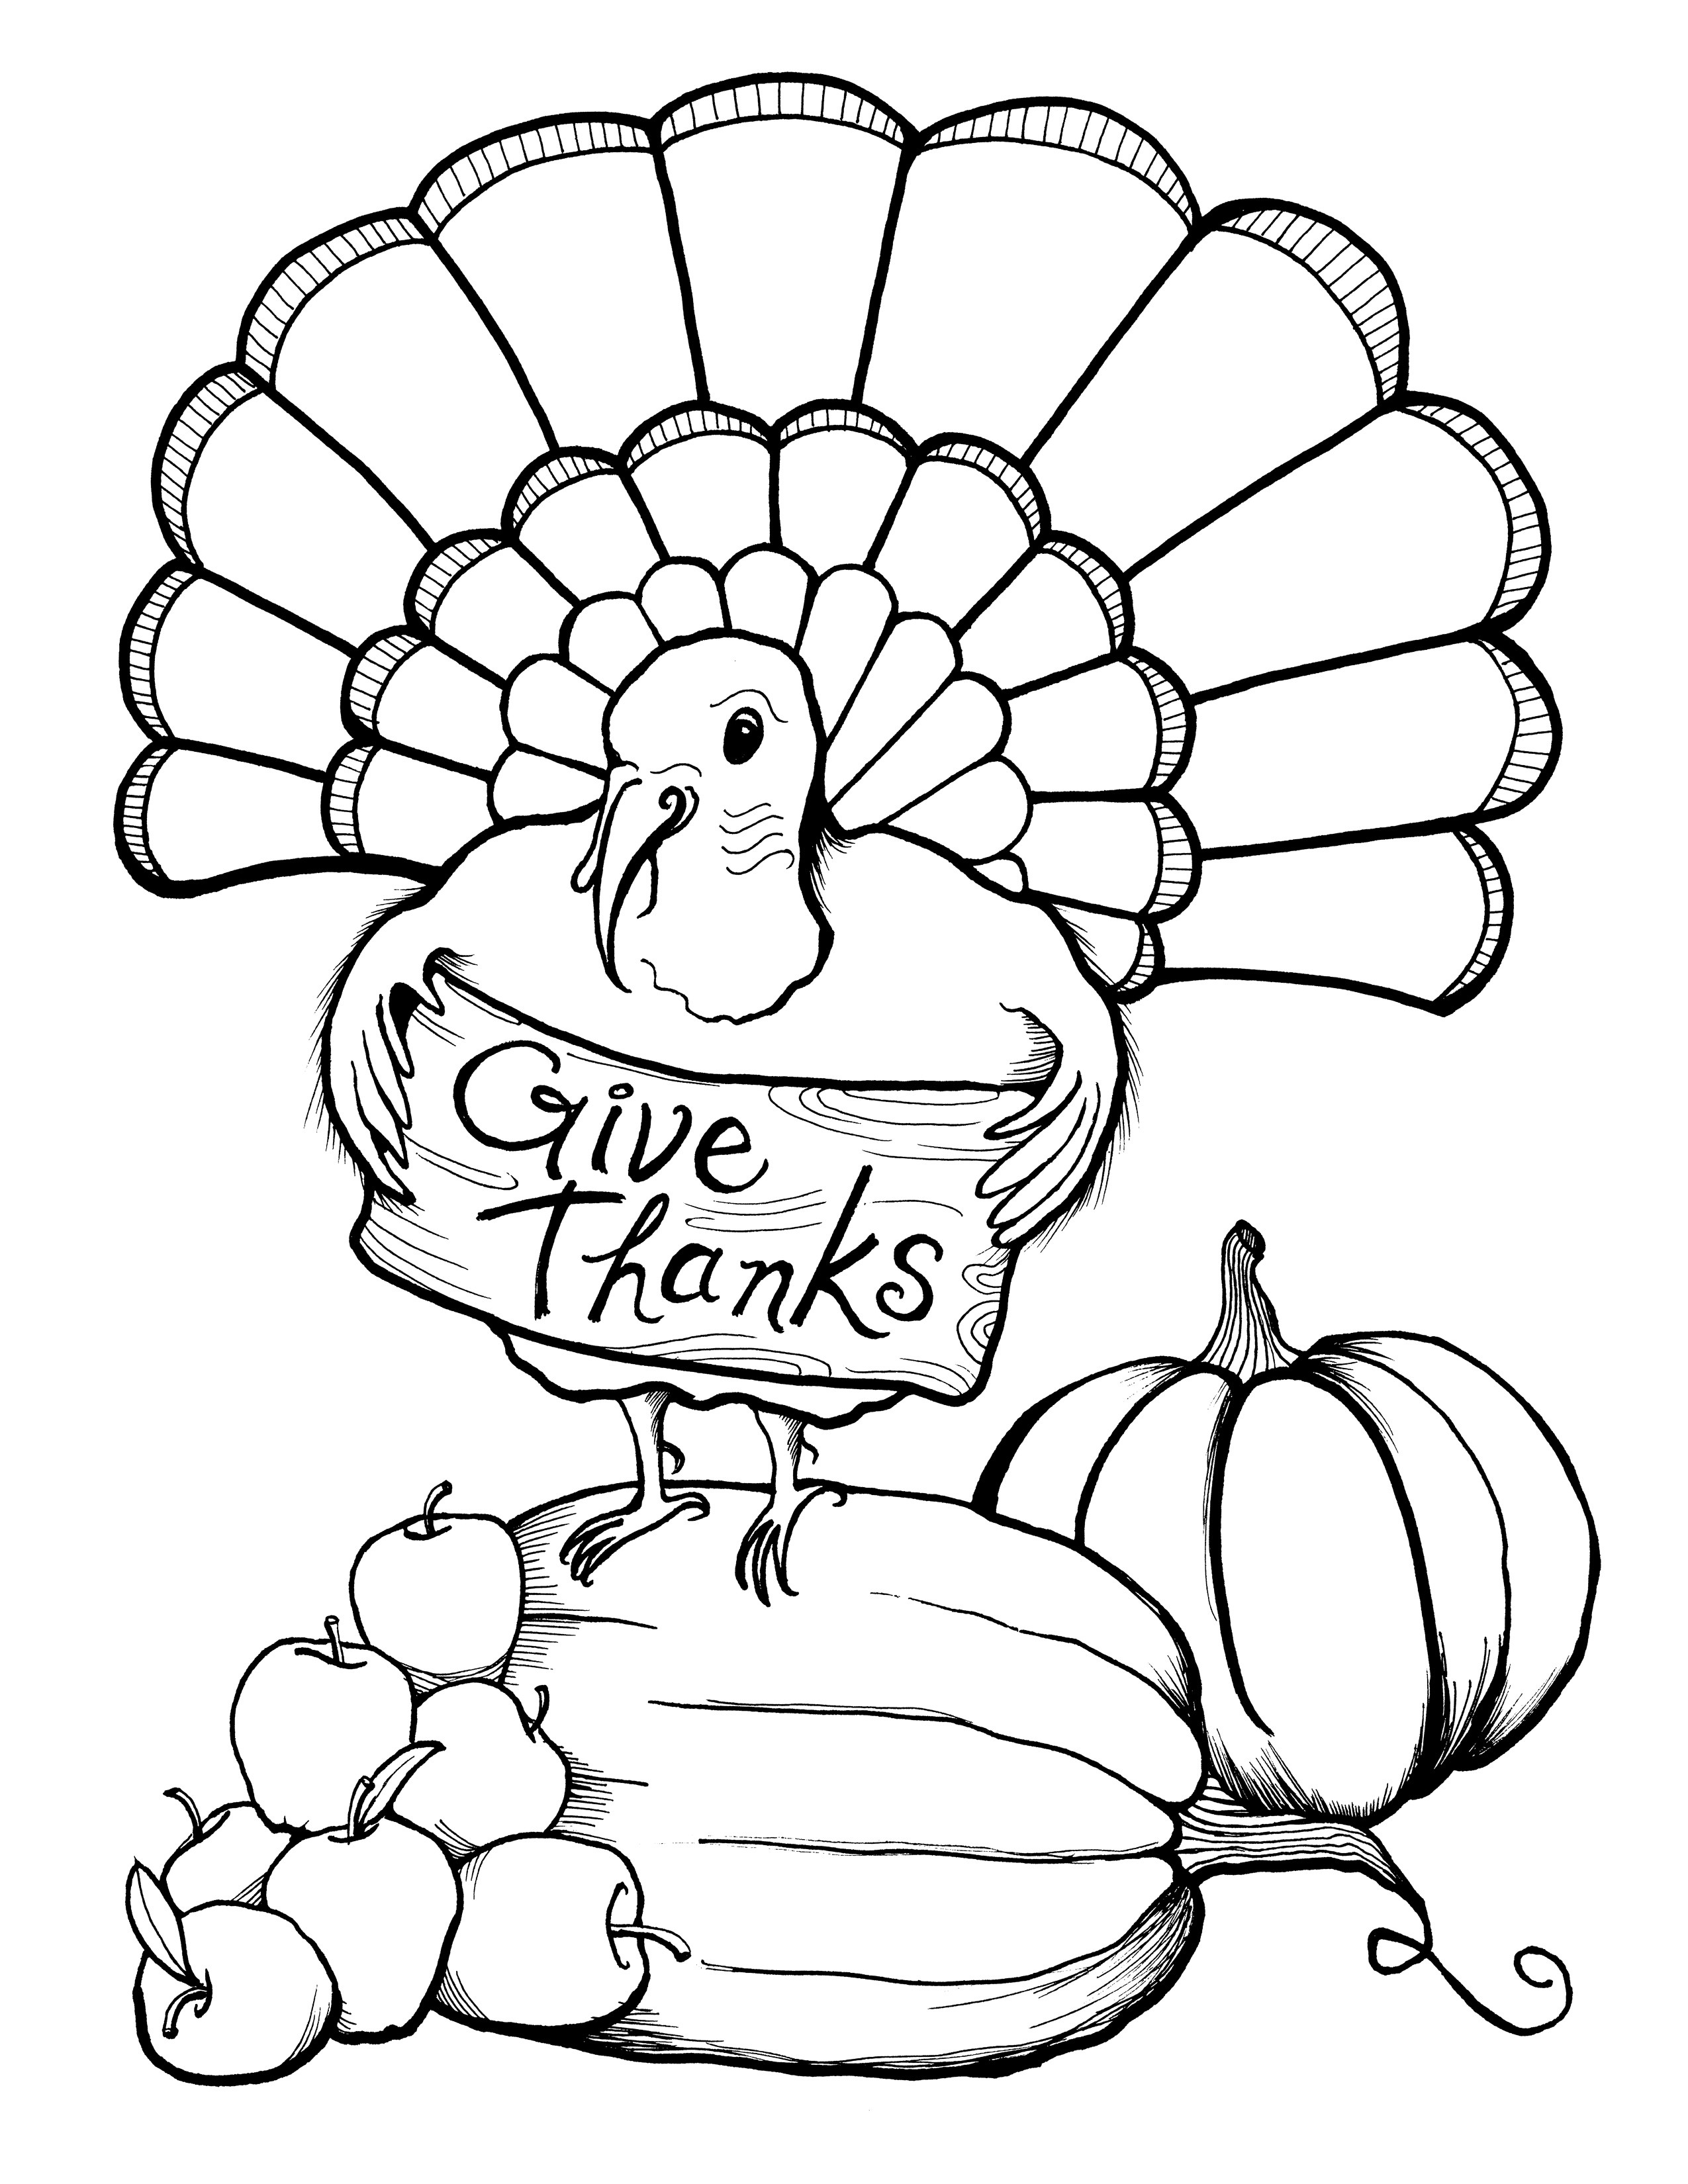 November Coloring Pages - Best Coloring Pages For Kids